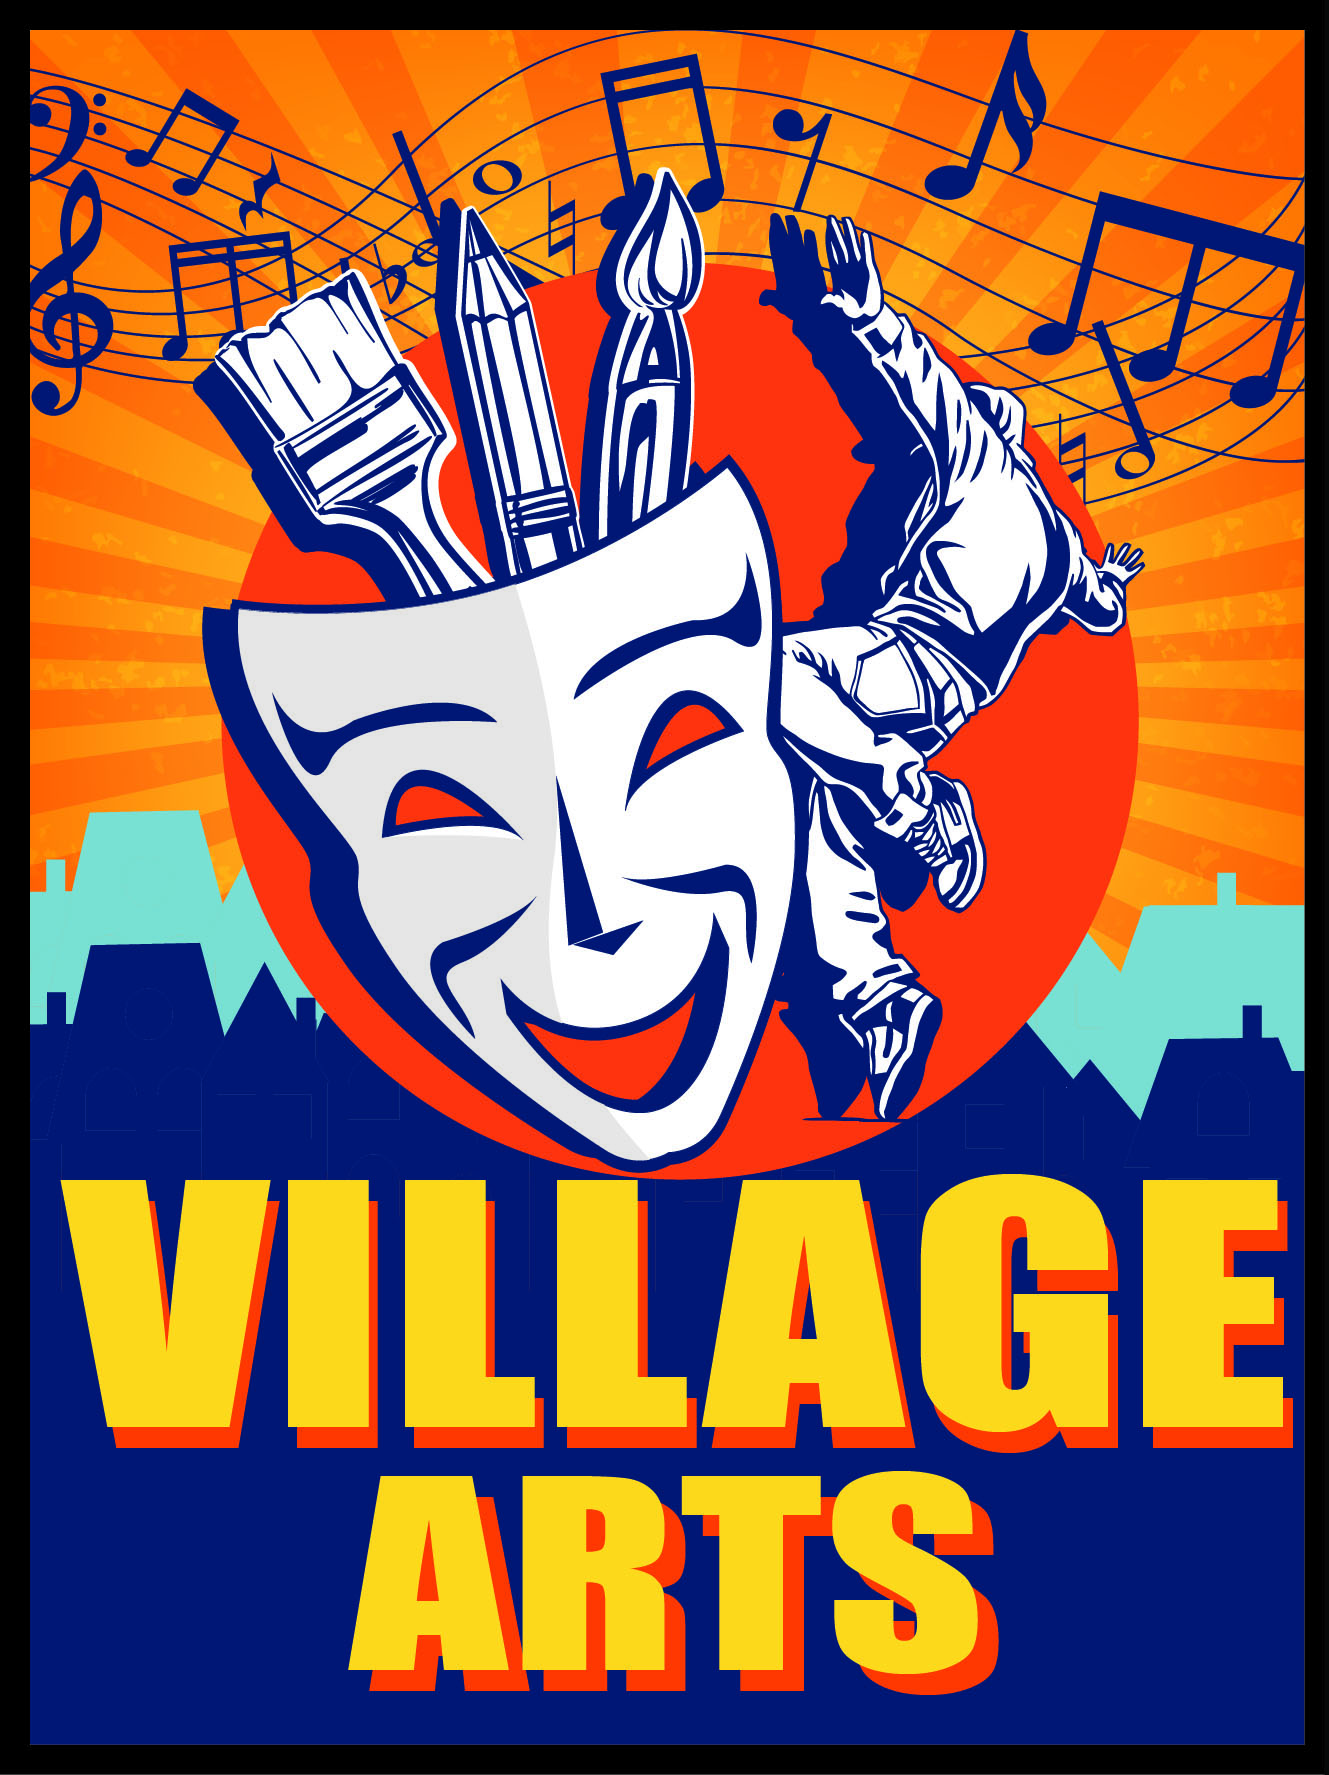 LA NEWS: Village Arts Fall Semester Registration Open Now in LA for On and Offline Programs